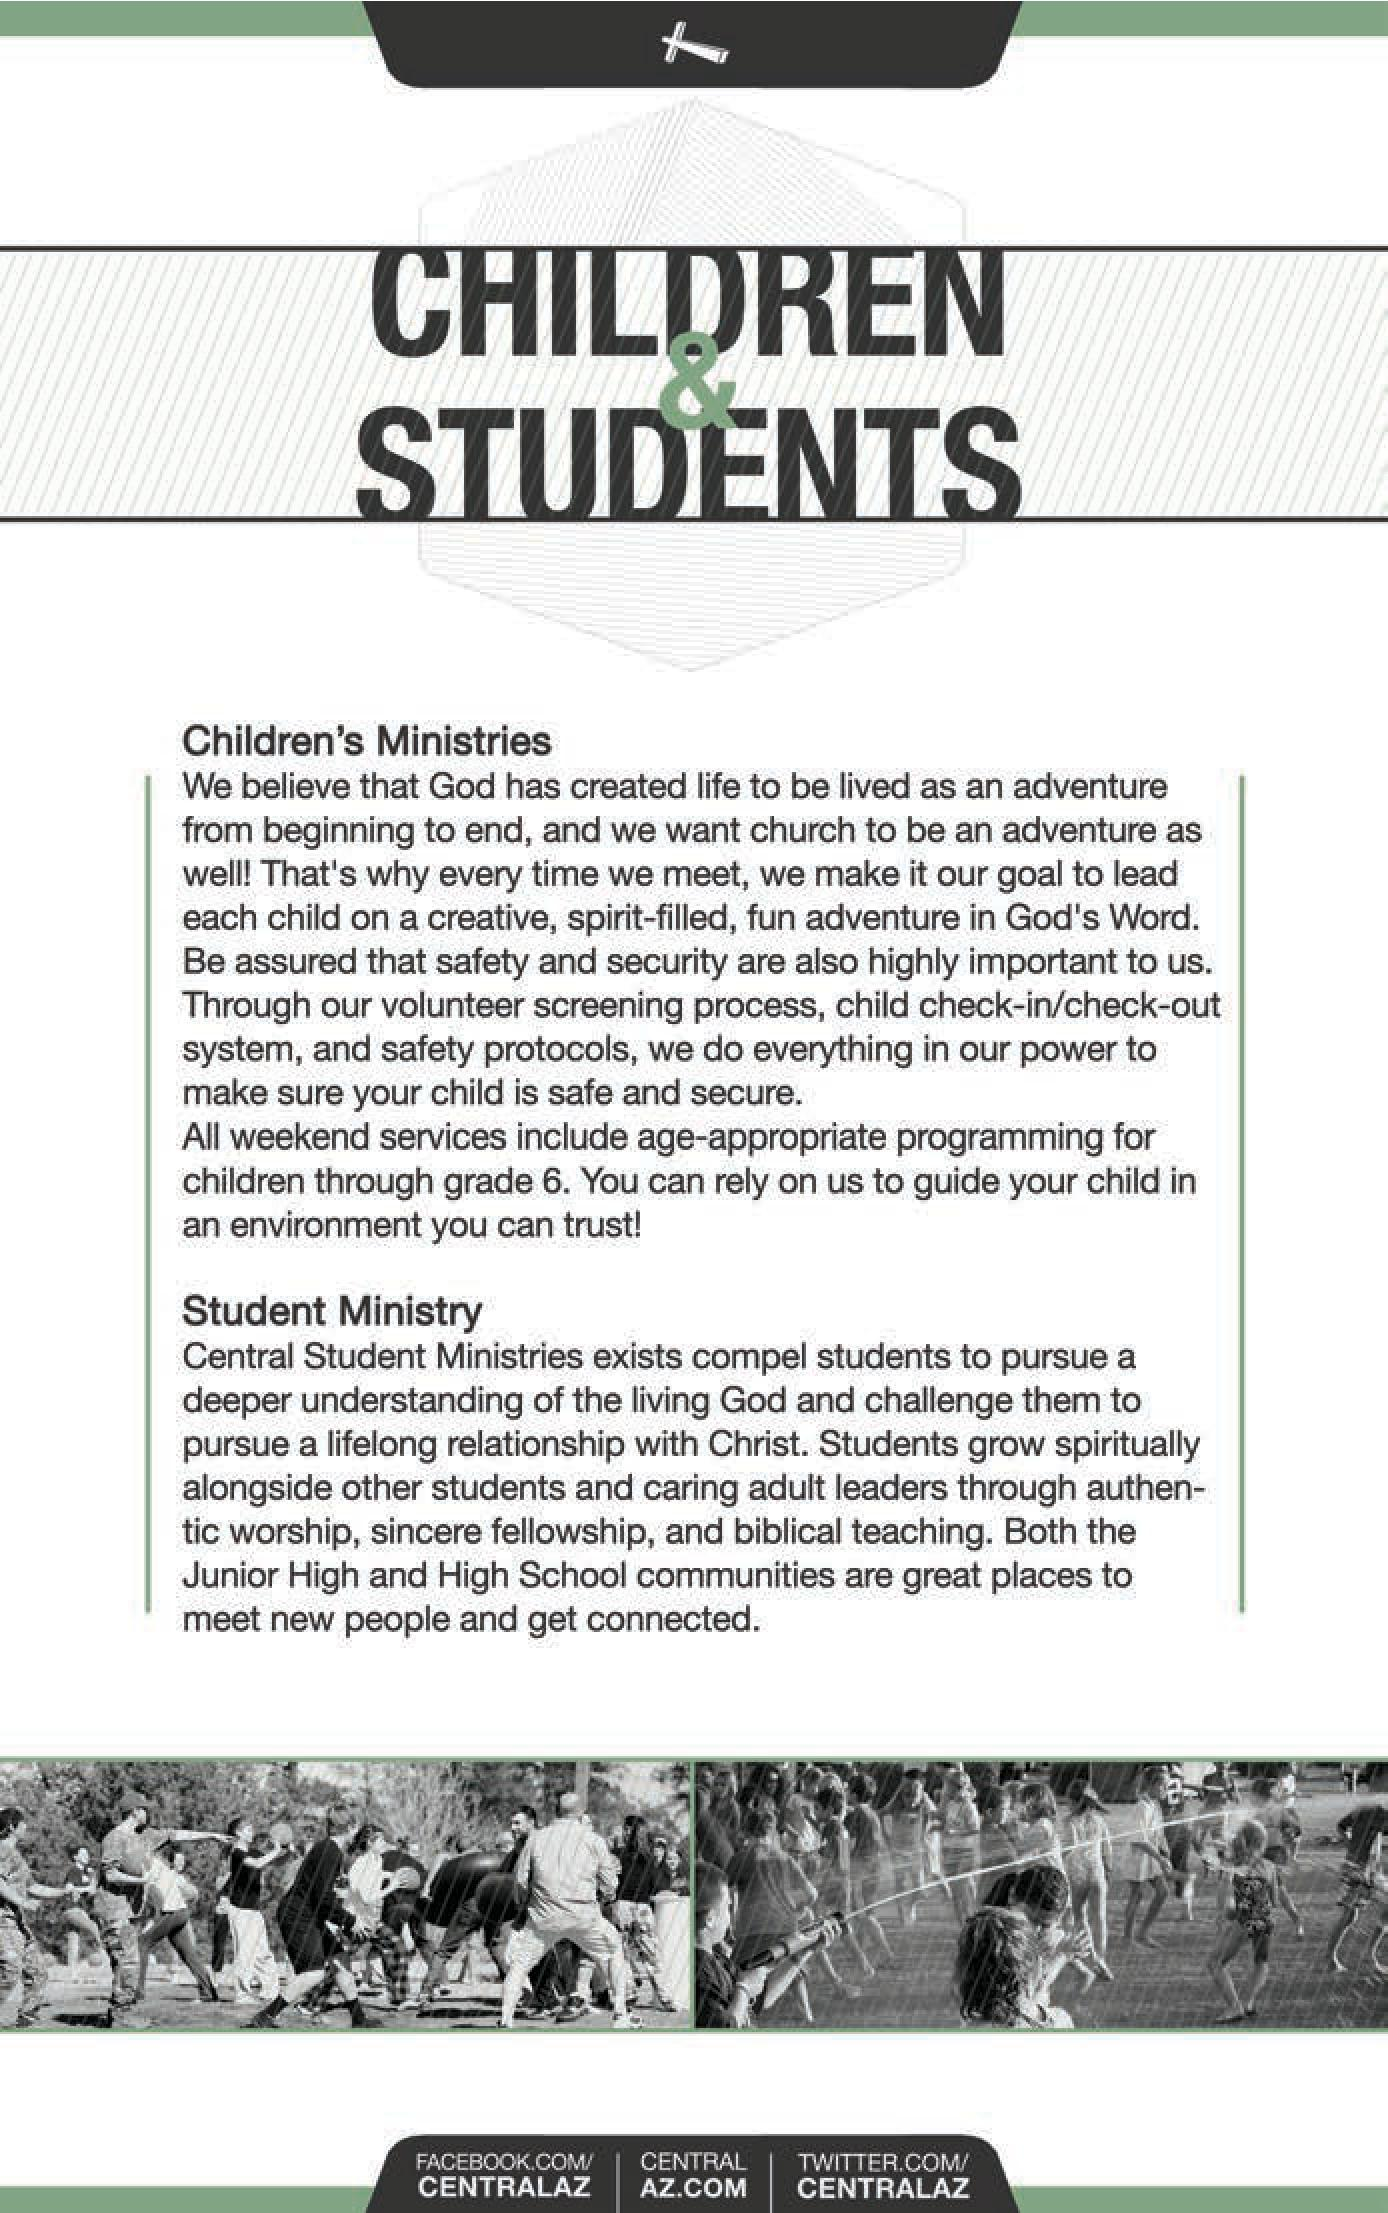 Children and Student Ministries